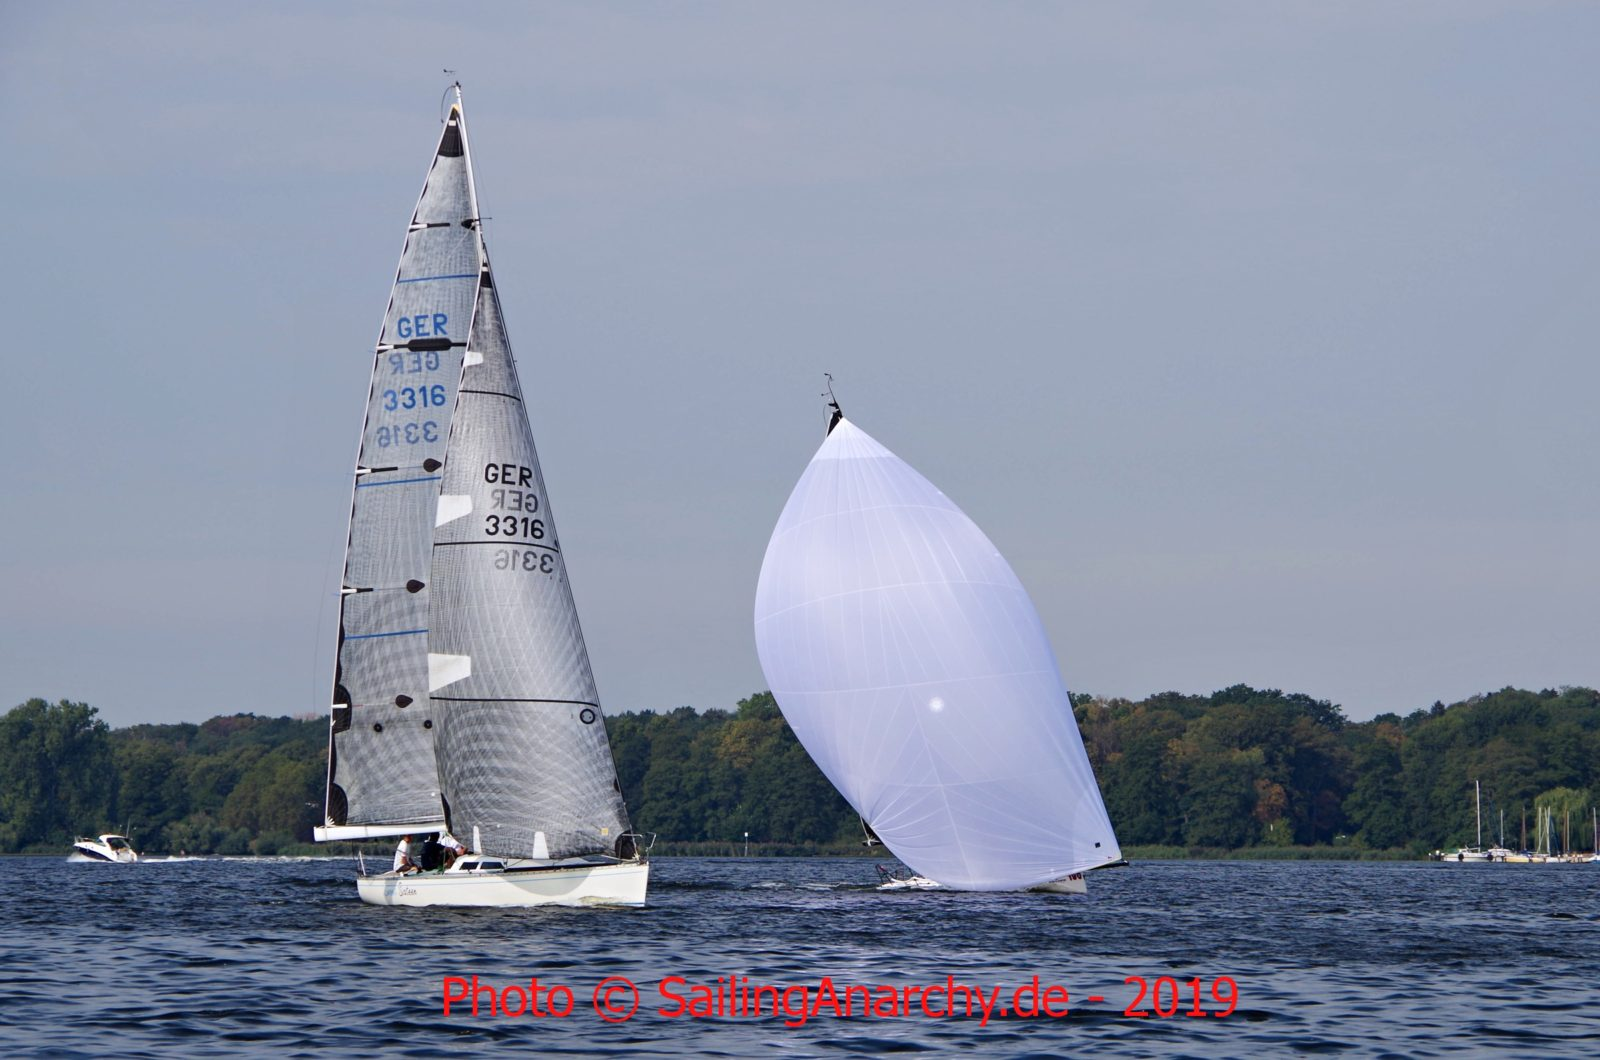 Yardstick Masters 2019 - Sweet Sixteen und Tenjin vor der Langstrecke am Sonntag - Photo © SailingAnarchy.de 2019